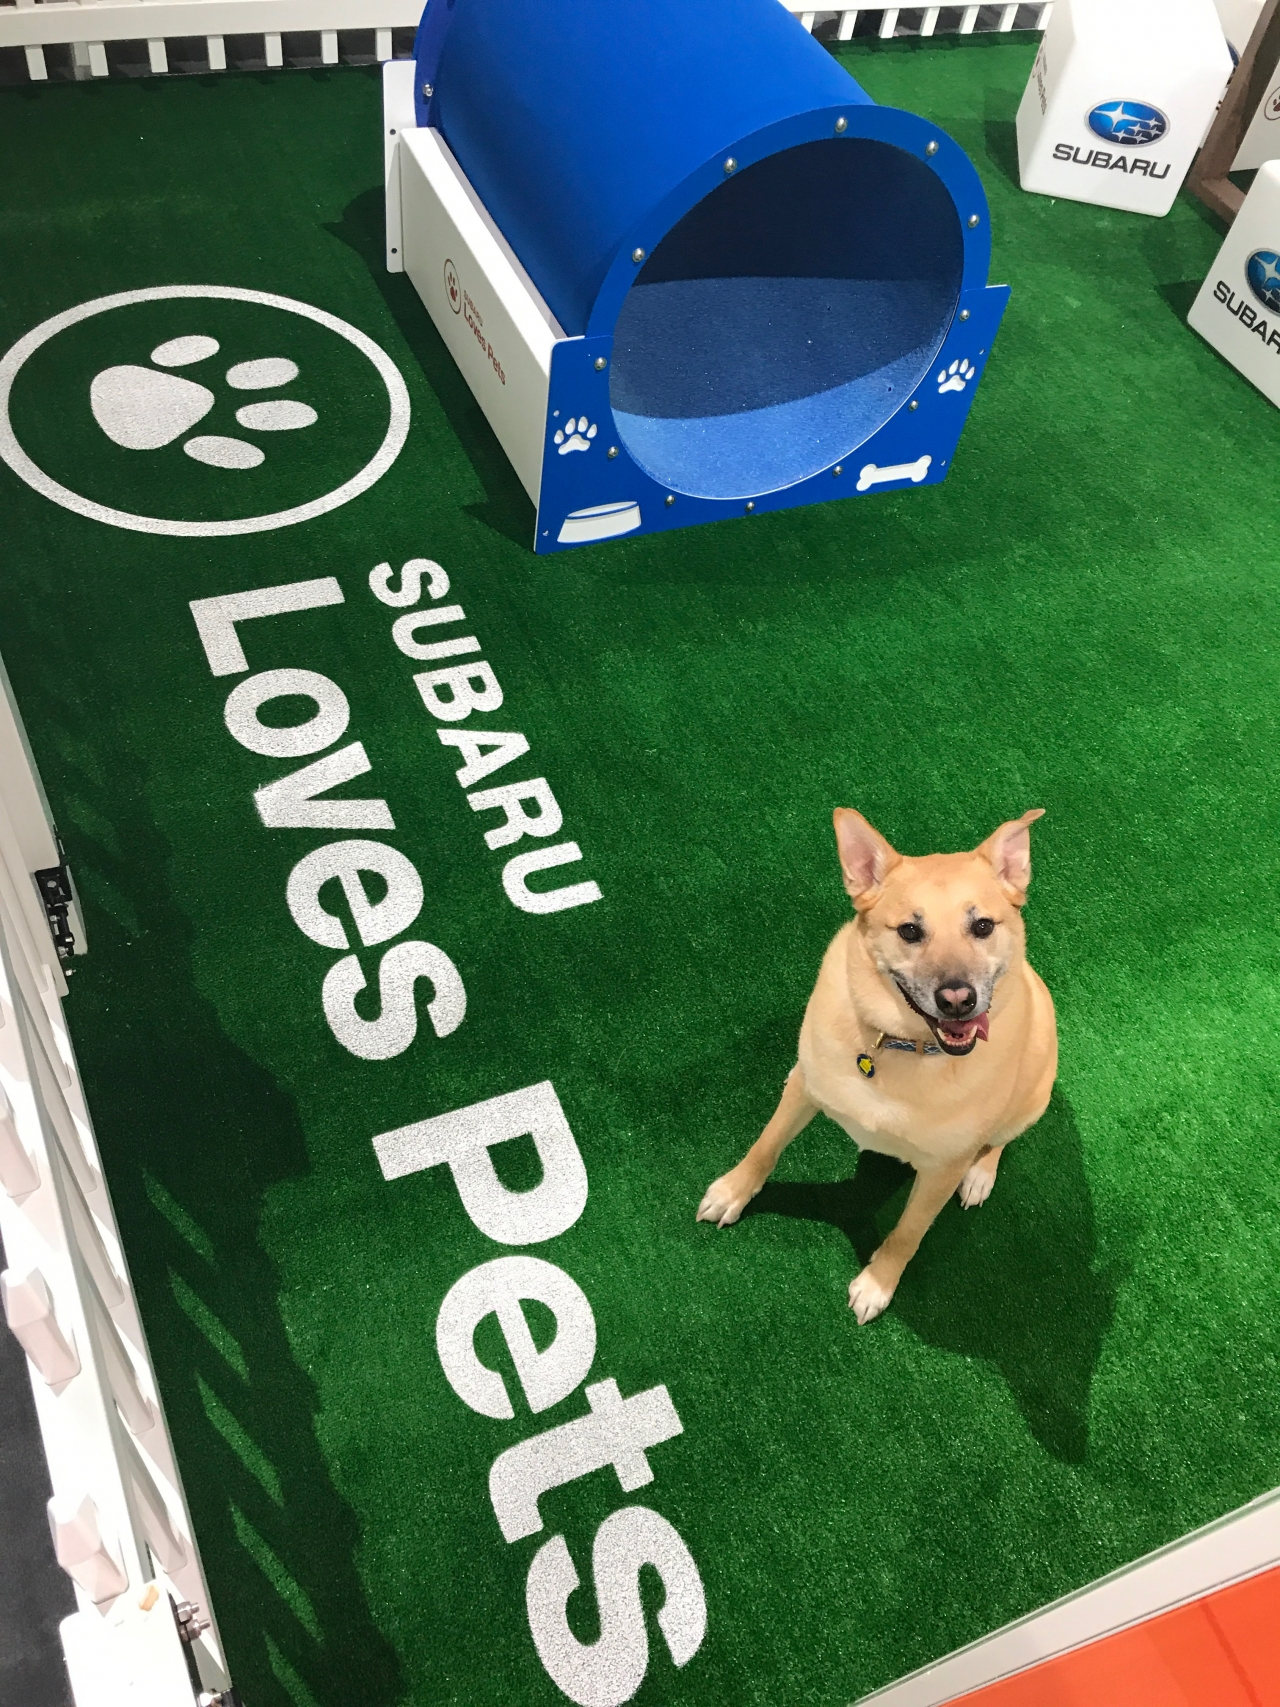 Subaru Hosts Event to Help Pets in Need During 2019